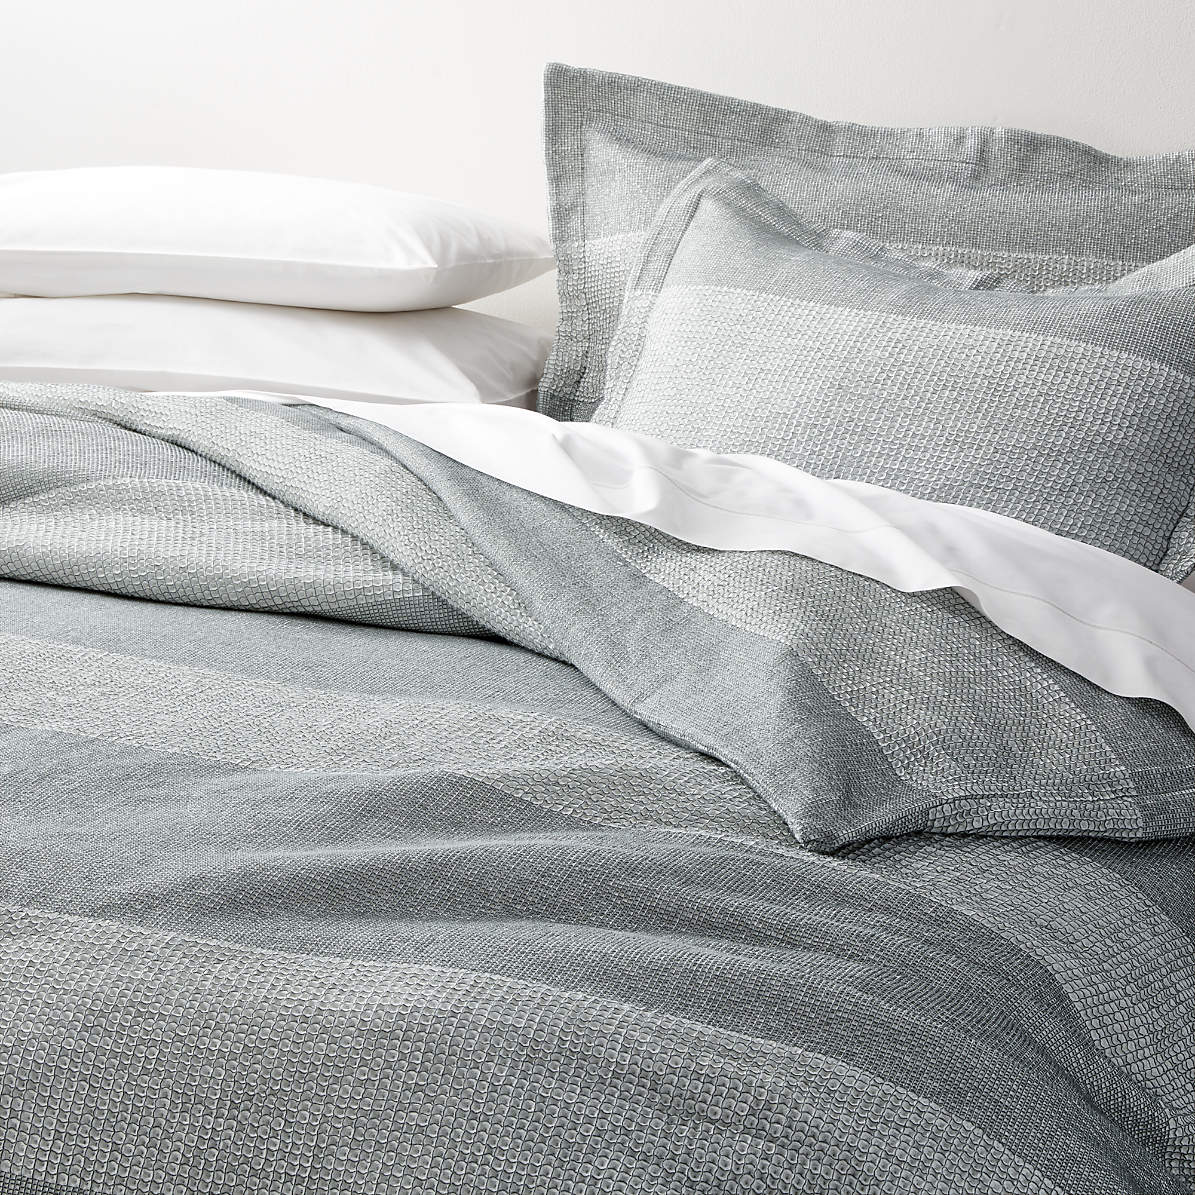 Kiyomi Grey Striped Duvet Covers And Pillow Shams Crate And Barrel